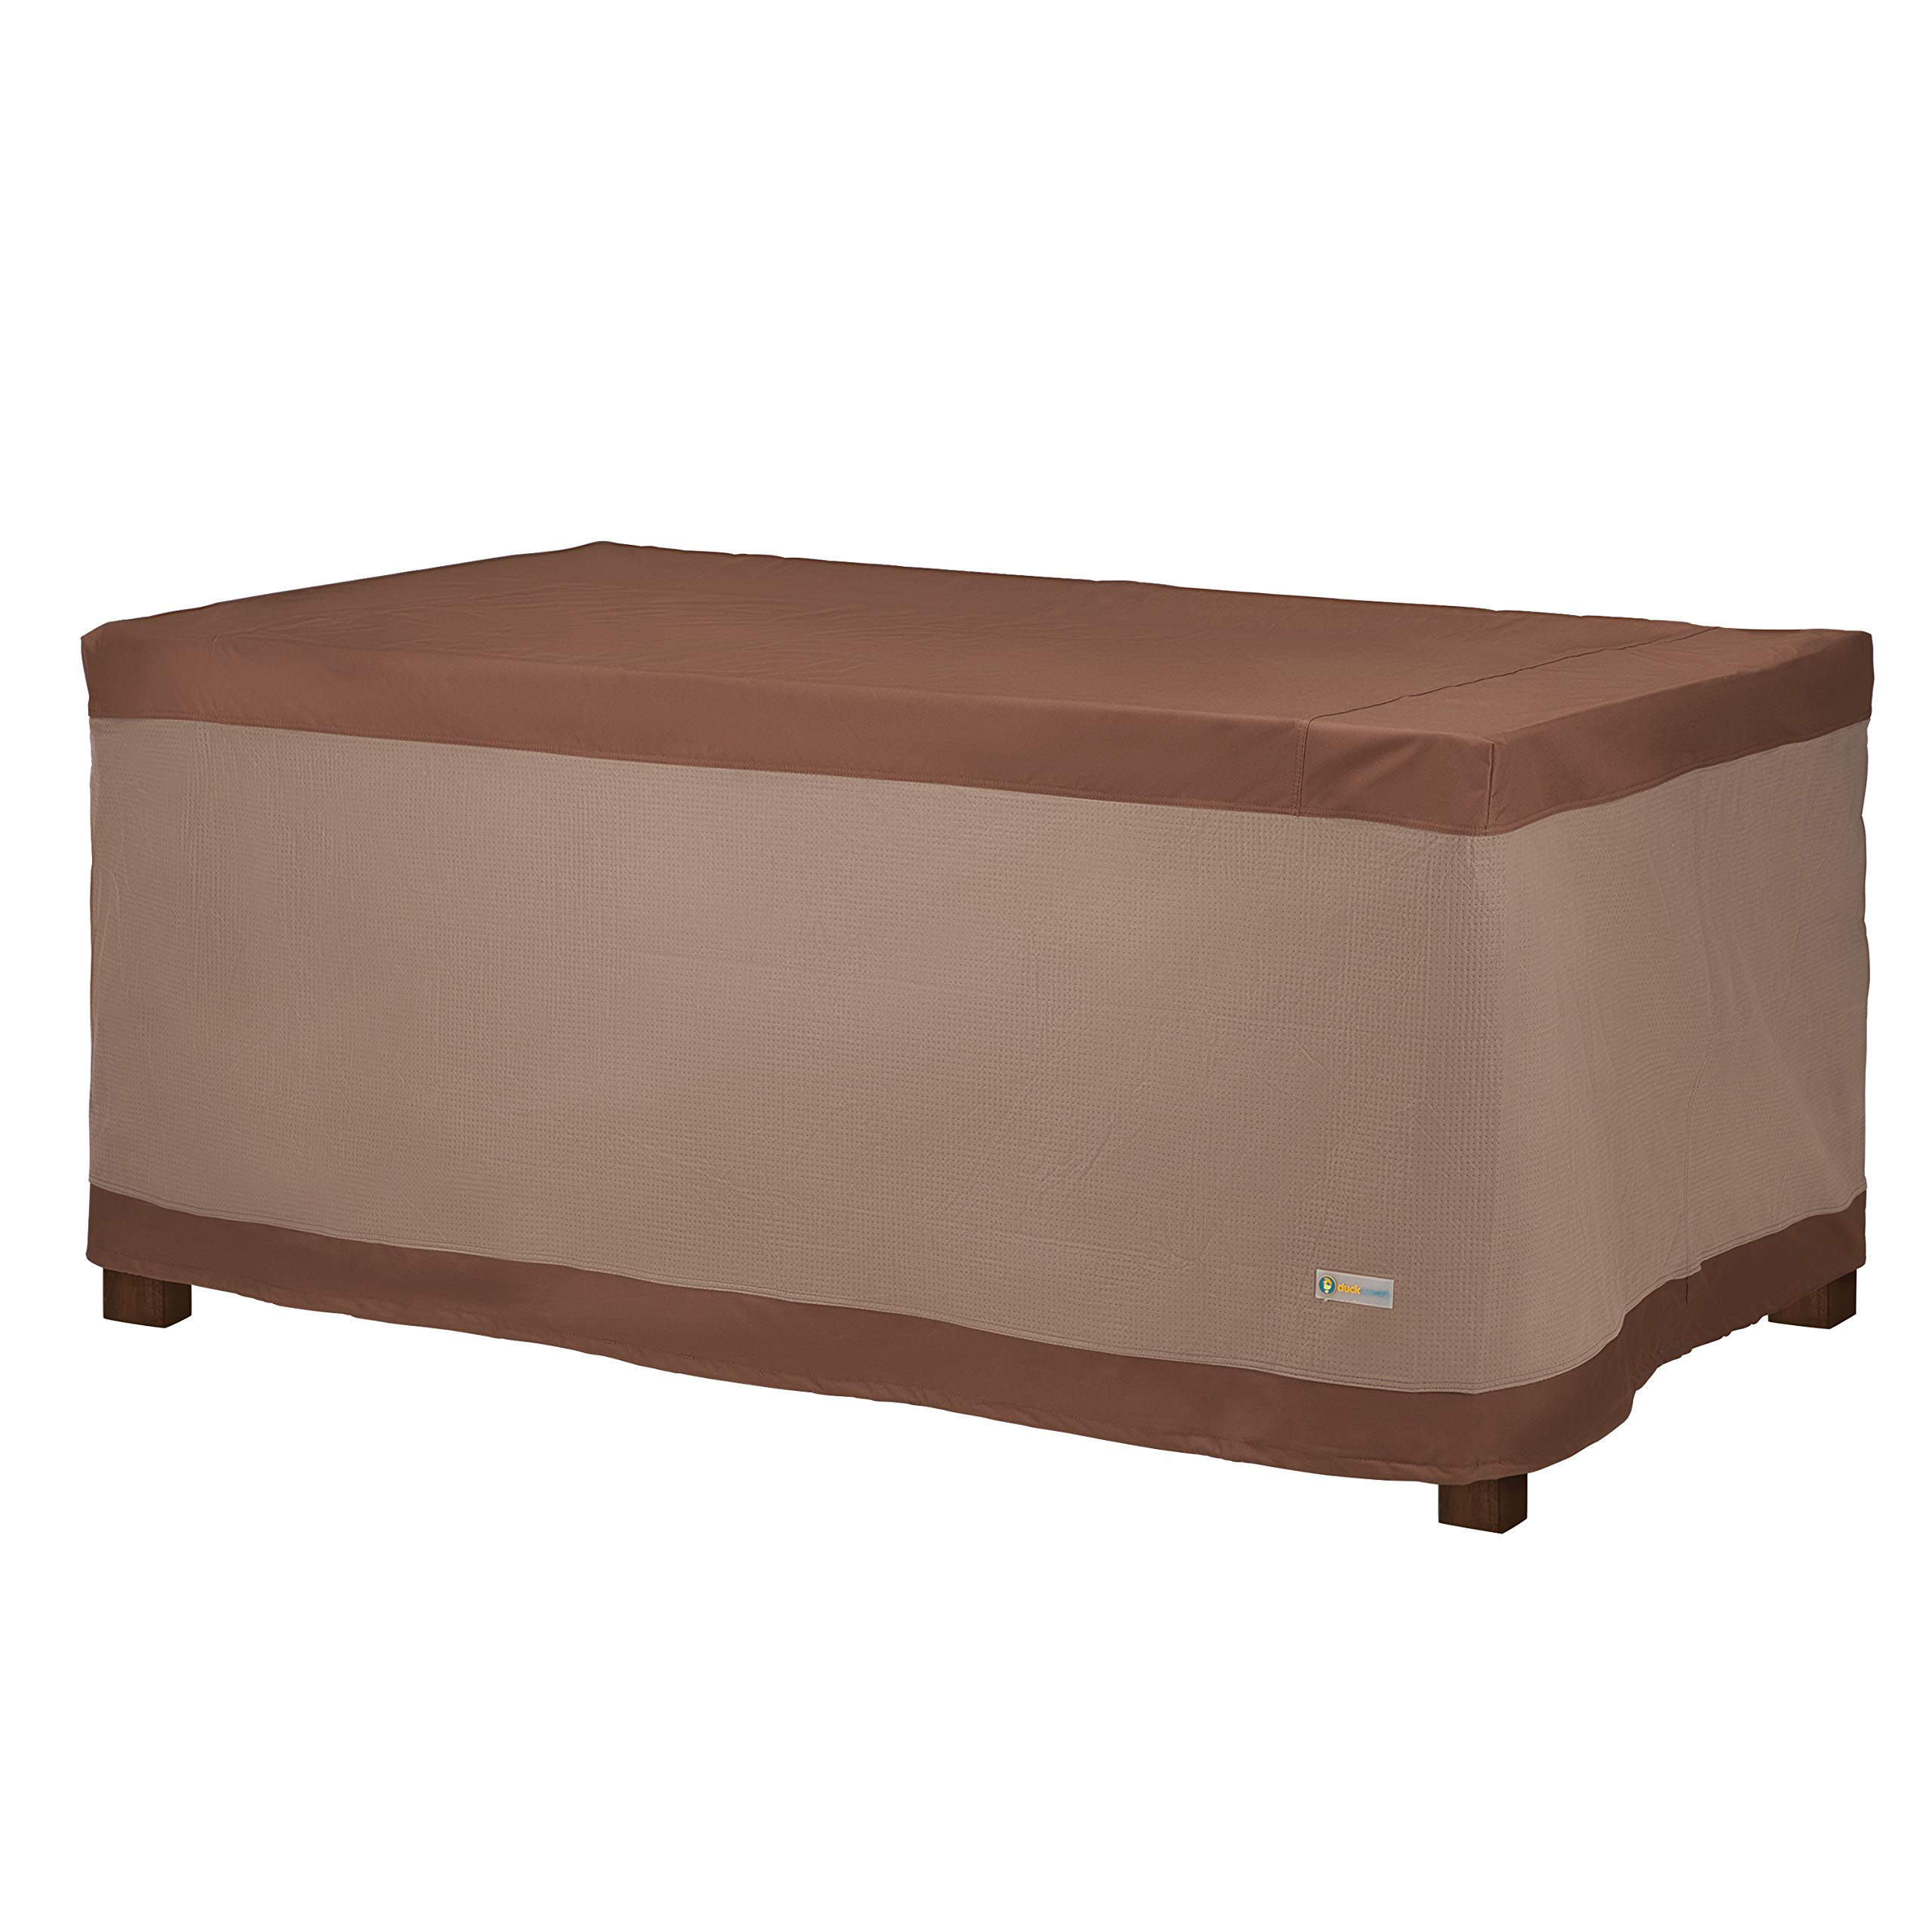 Duck Covers URT744632 Ultimate Rectangular Table Cover 72'' W, Mocha Cappuccino by Duck Covers